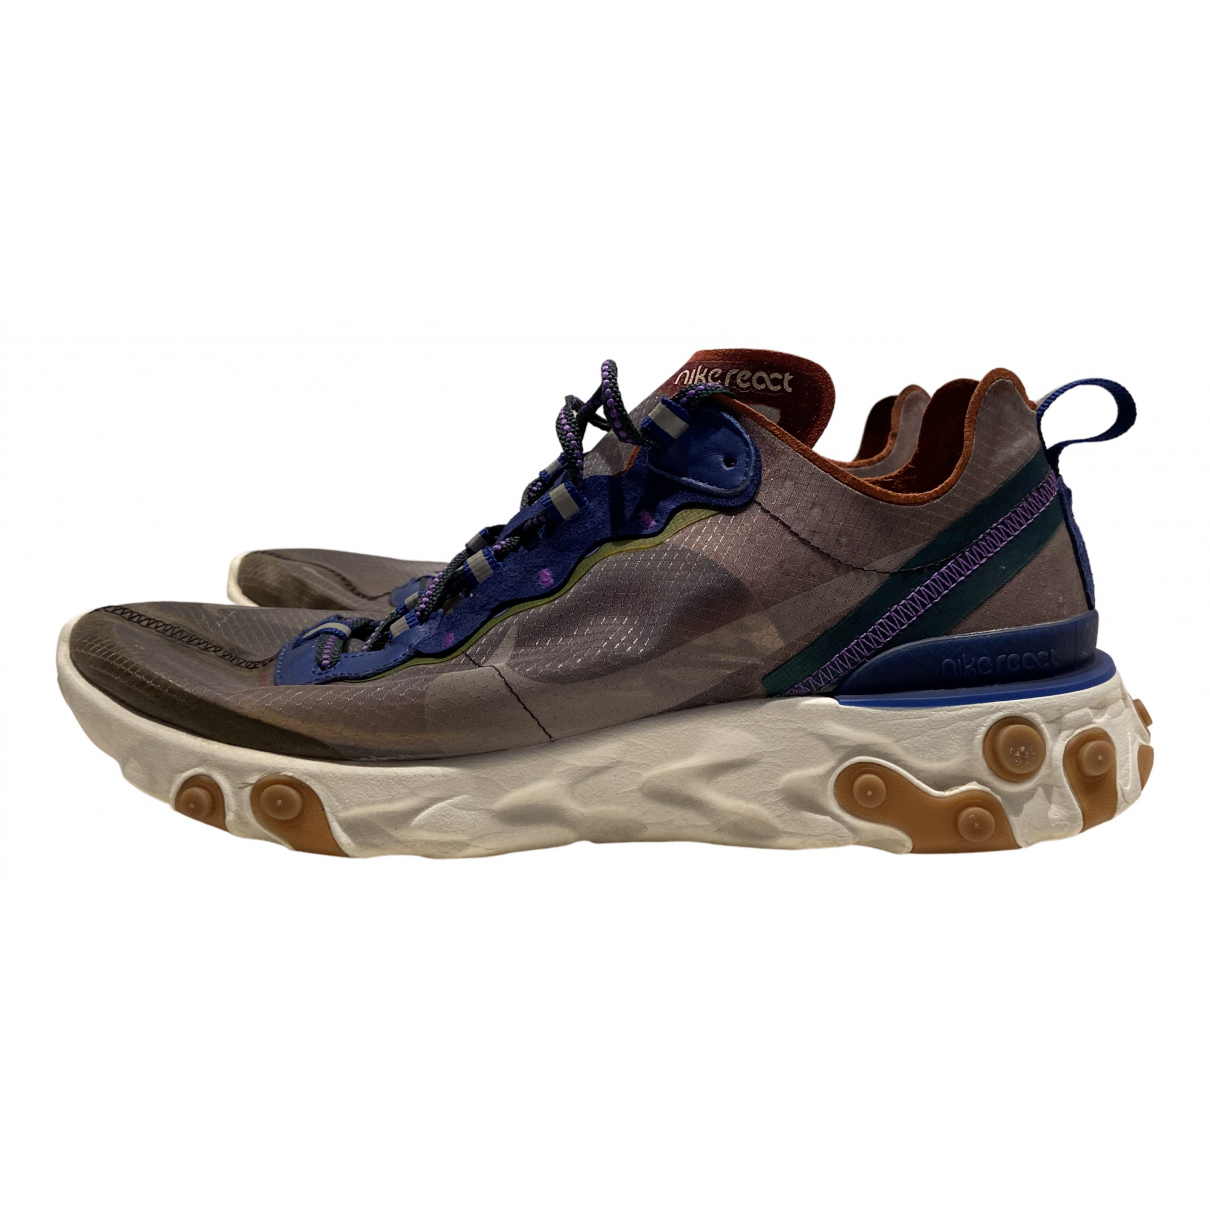 Nike - Baskets React Element 87  pour homme en suede - multicolore